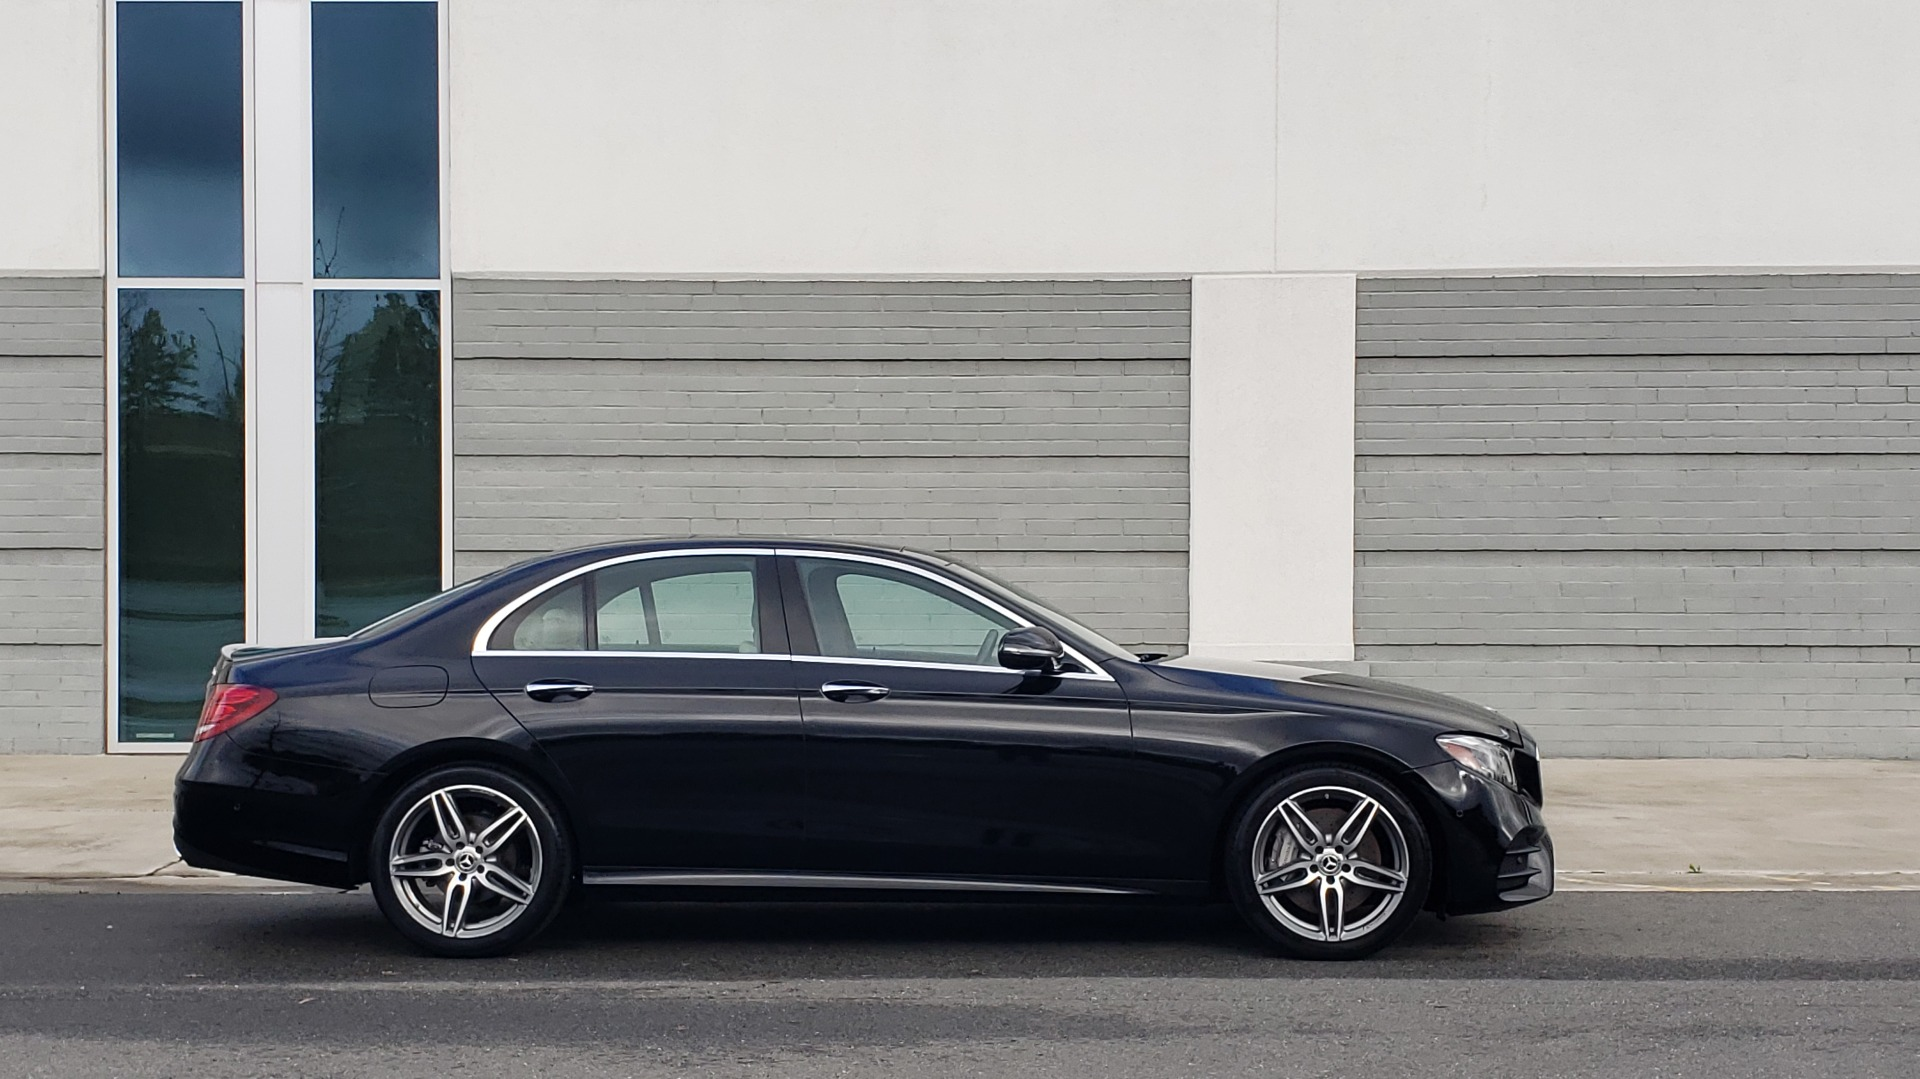 Used 2018 Mercedes-Benz E-CLASS E 300 PREM PKG 2 / NAV / PANO-ROOF / WARMTH & COMFORT PKG for sale $35,295 at Formula Imports in Charlotte NC 28227 3